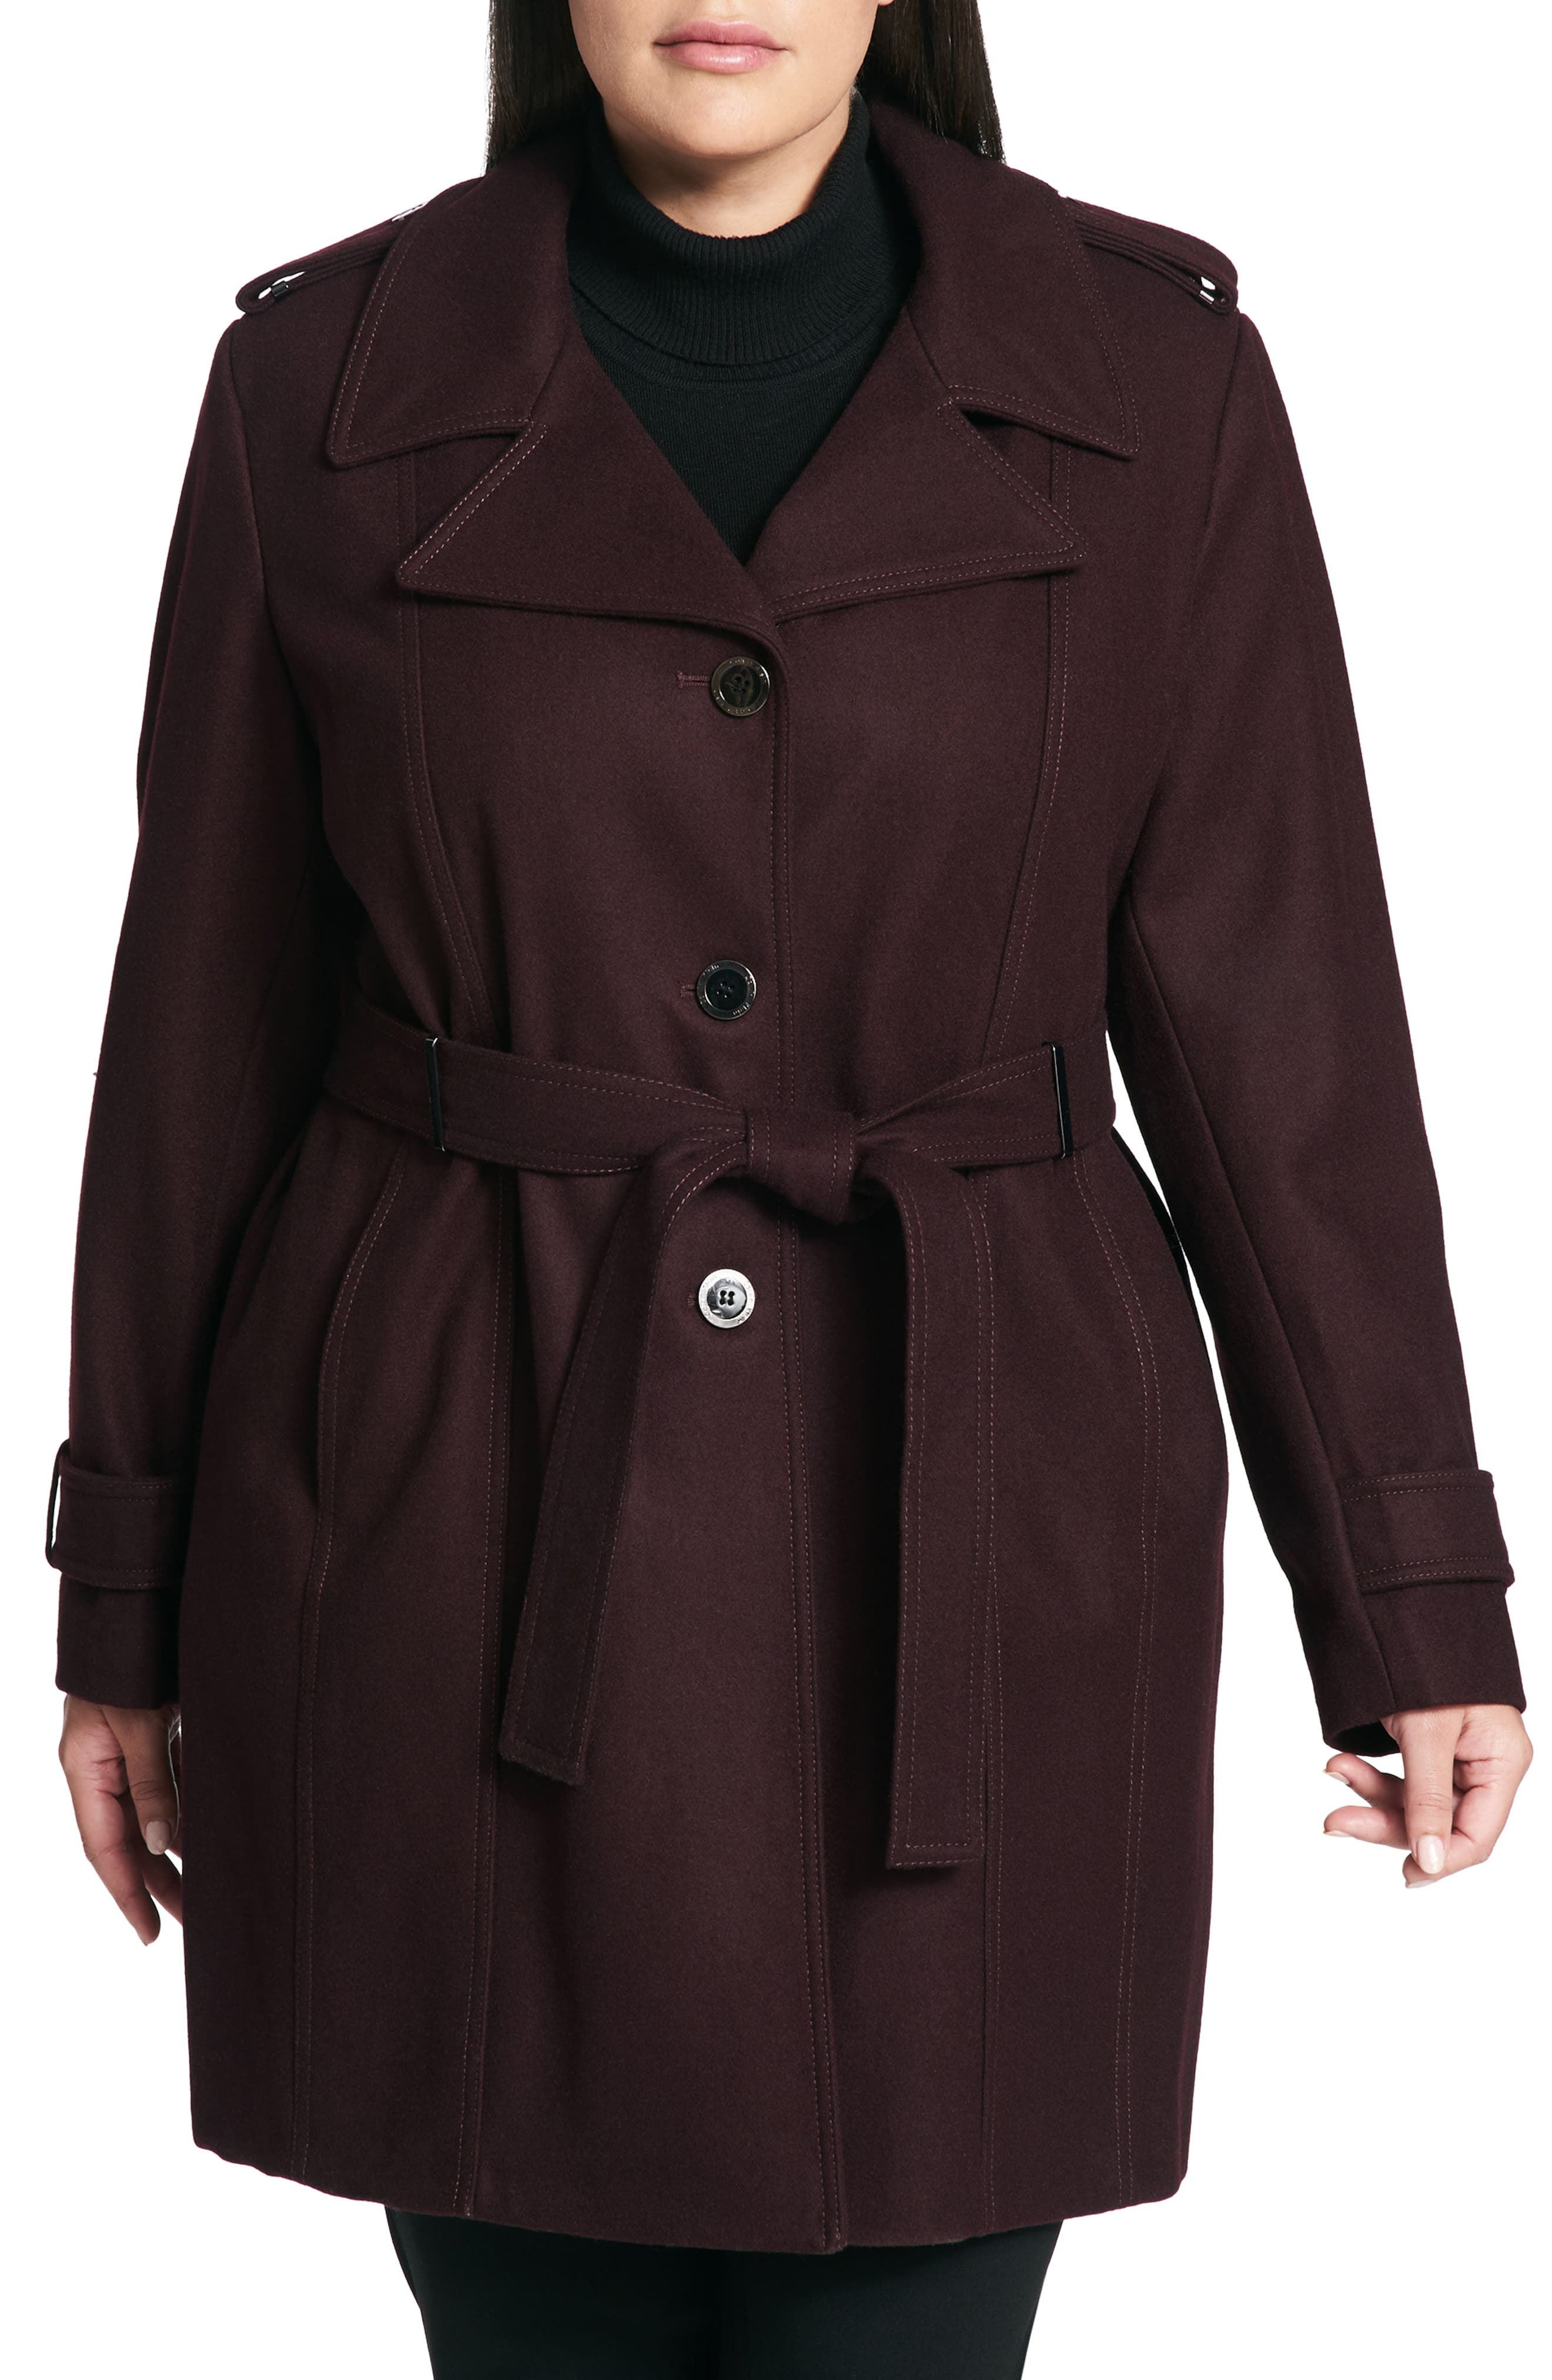 Main Image - Calvin Klein Single Breasted Wool Blend Trench Coat (Plus Size)